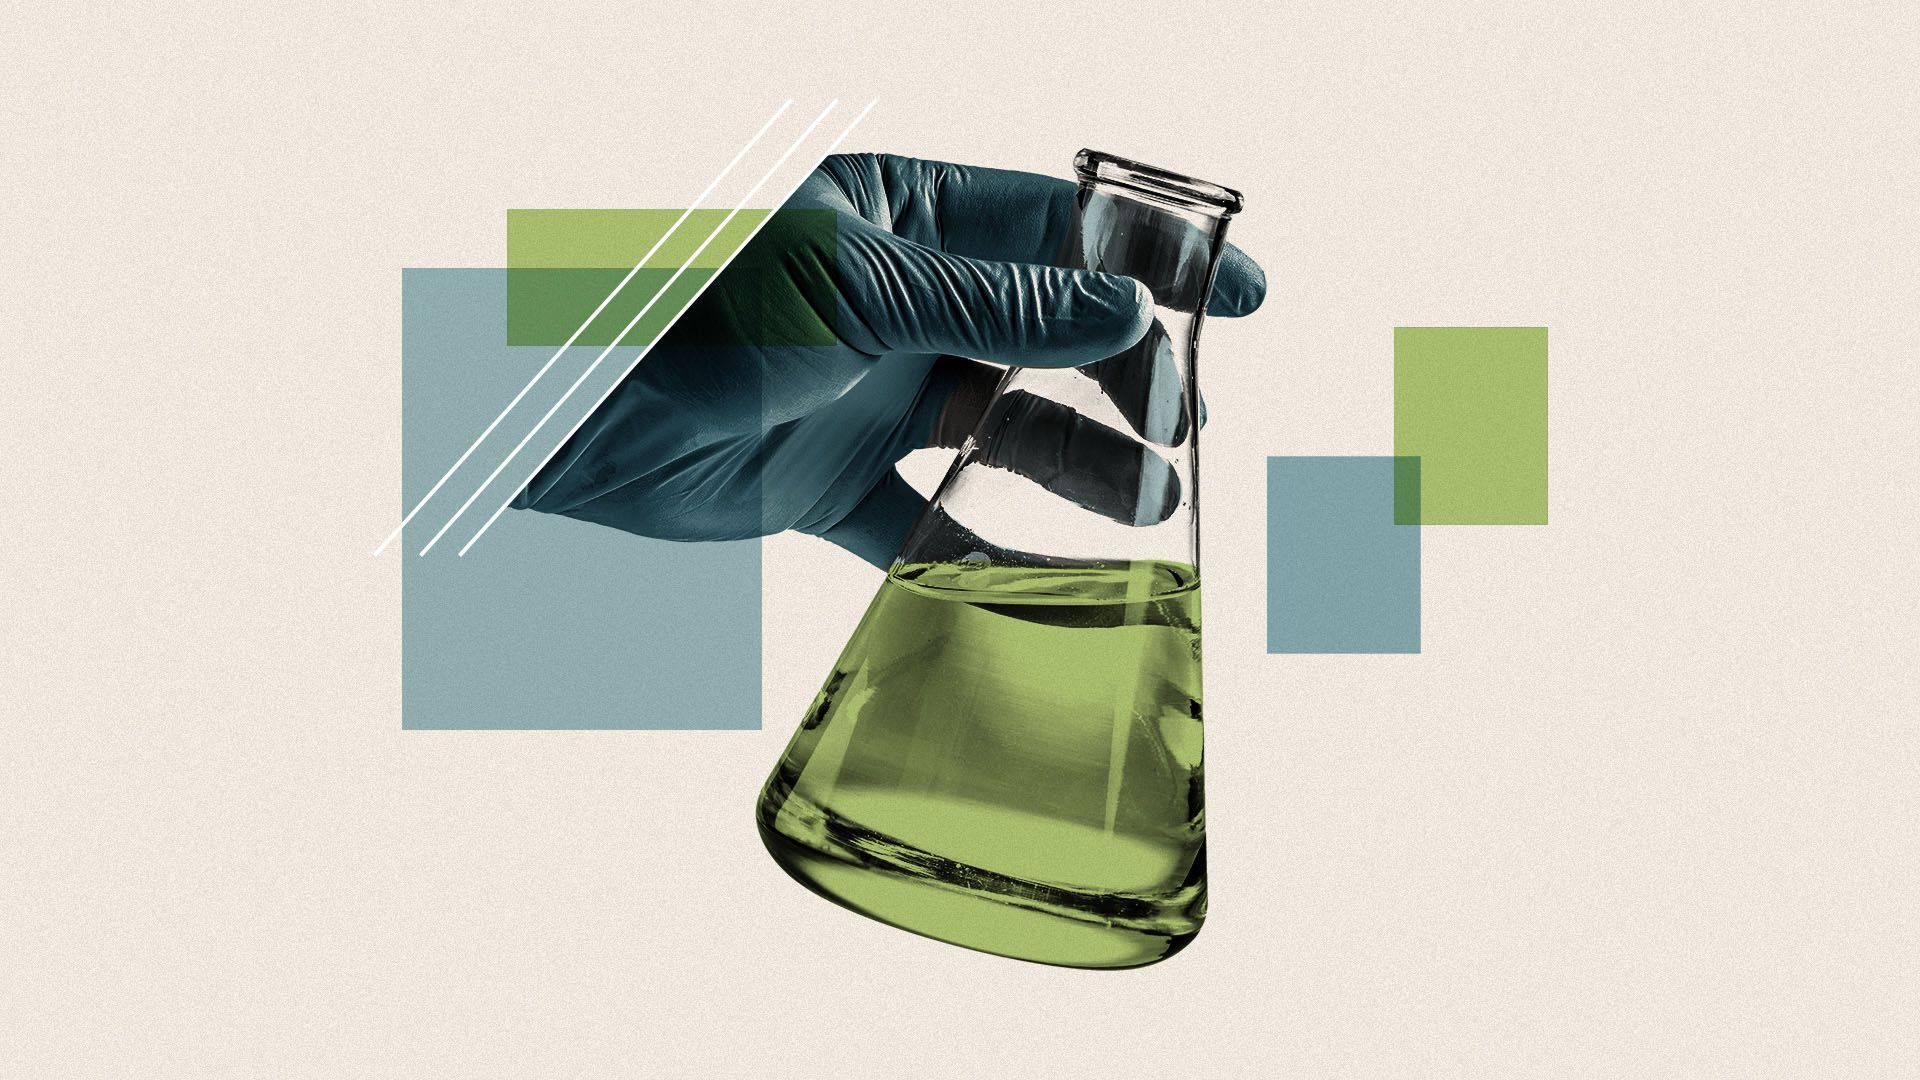 The social returns of investing in scientific innovation